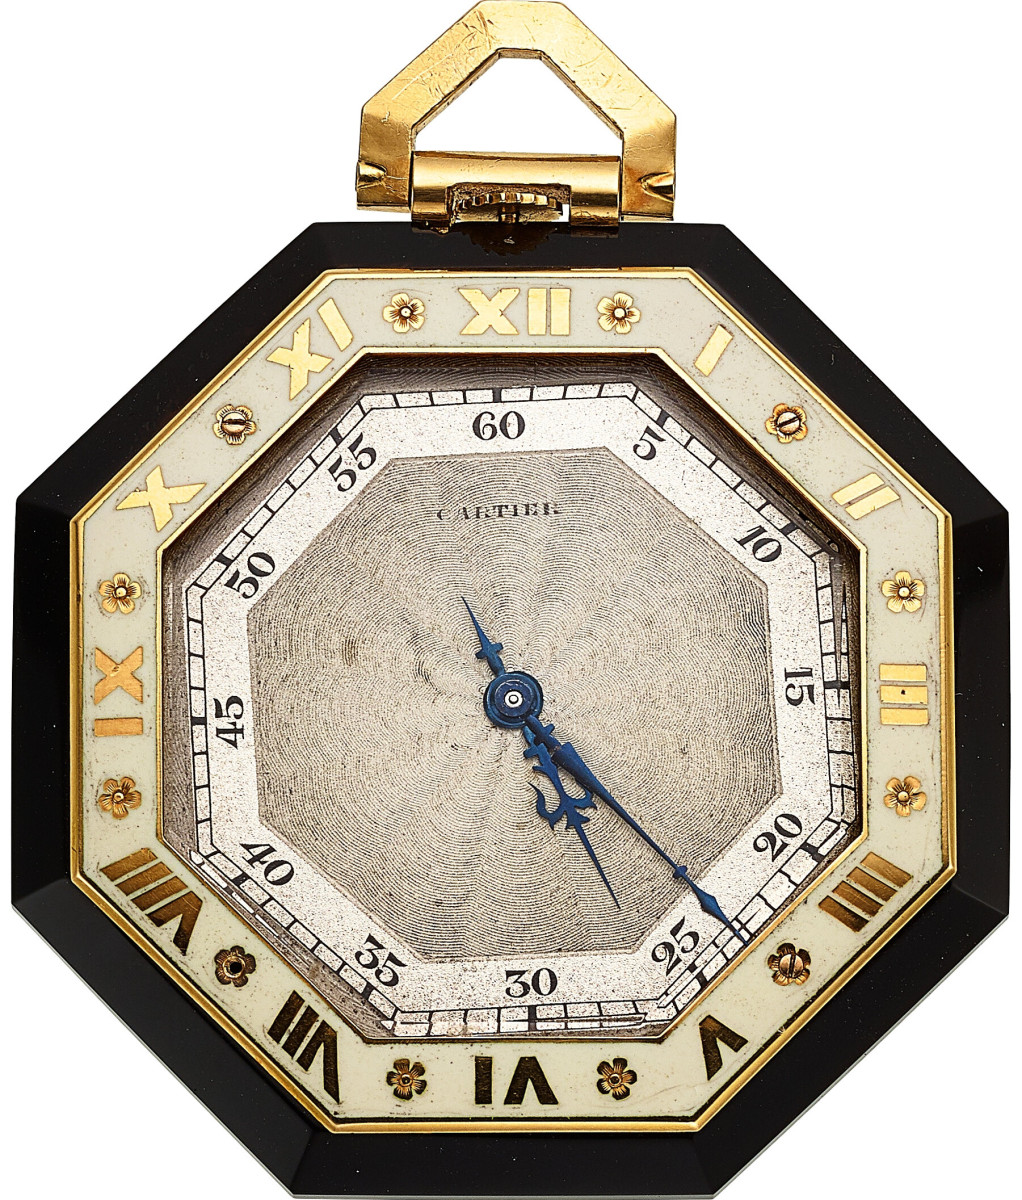 Art Deco everything was a top collecting trend in 2020, especially small items like watches. Cartier enamel, gold and hardstone Art Deco watch, European Watch & Clock Co., circa  1920s; $4,000.